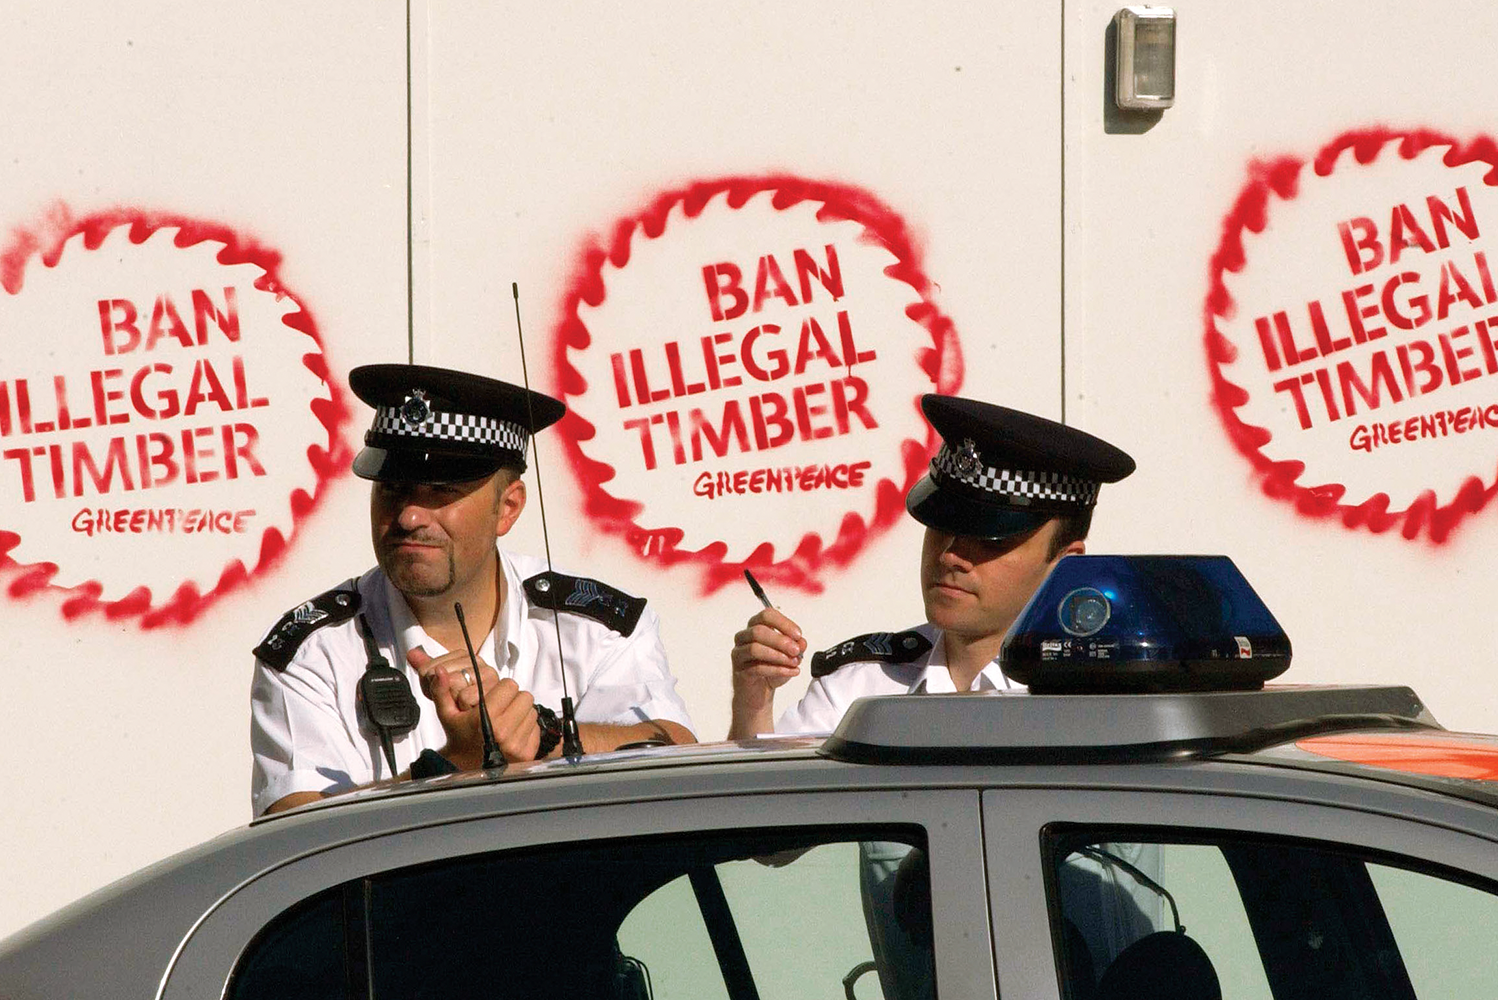 Campaign_Greenpeace_BanIllegalTimber_Stencil_Police.png